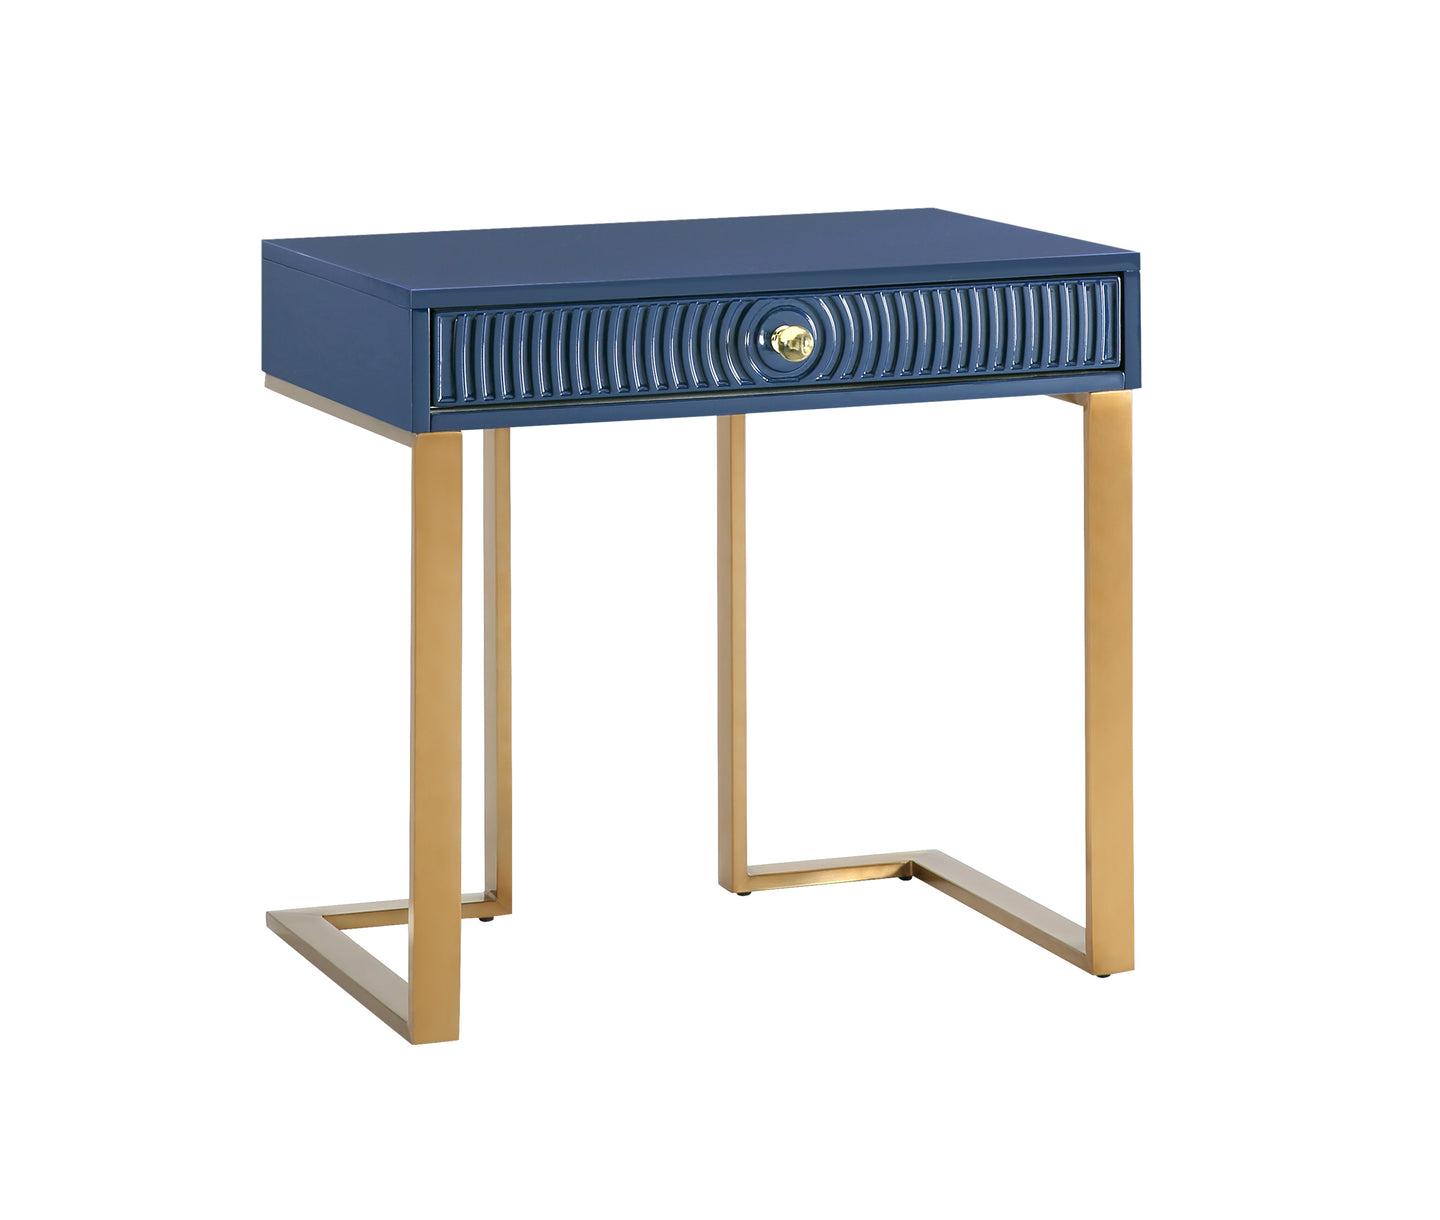 TOV Furniture Modern Janie Blue Lacquer Side Table - TOV Furniture, Minimal & Modern - 1